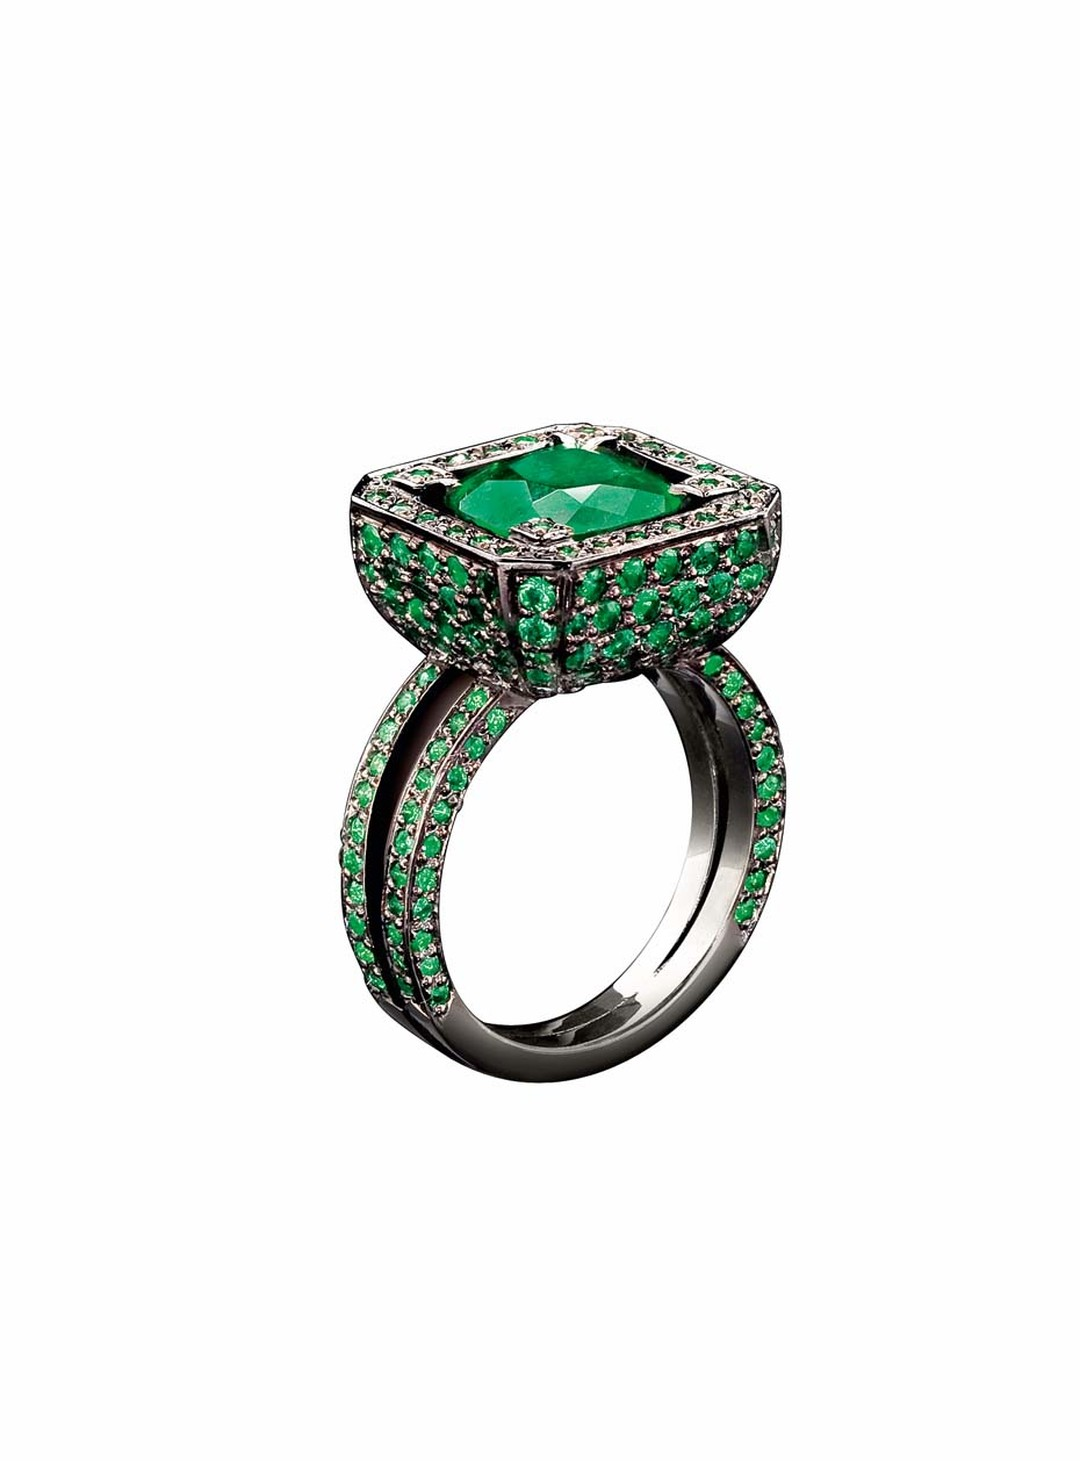 "Solange Azagury-Partridge Cup ring with a central emerald, pavé set emerald ""cup"" body and emerald-set band in blackened white gold."